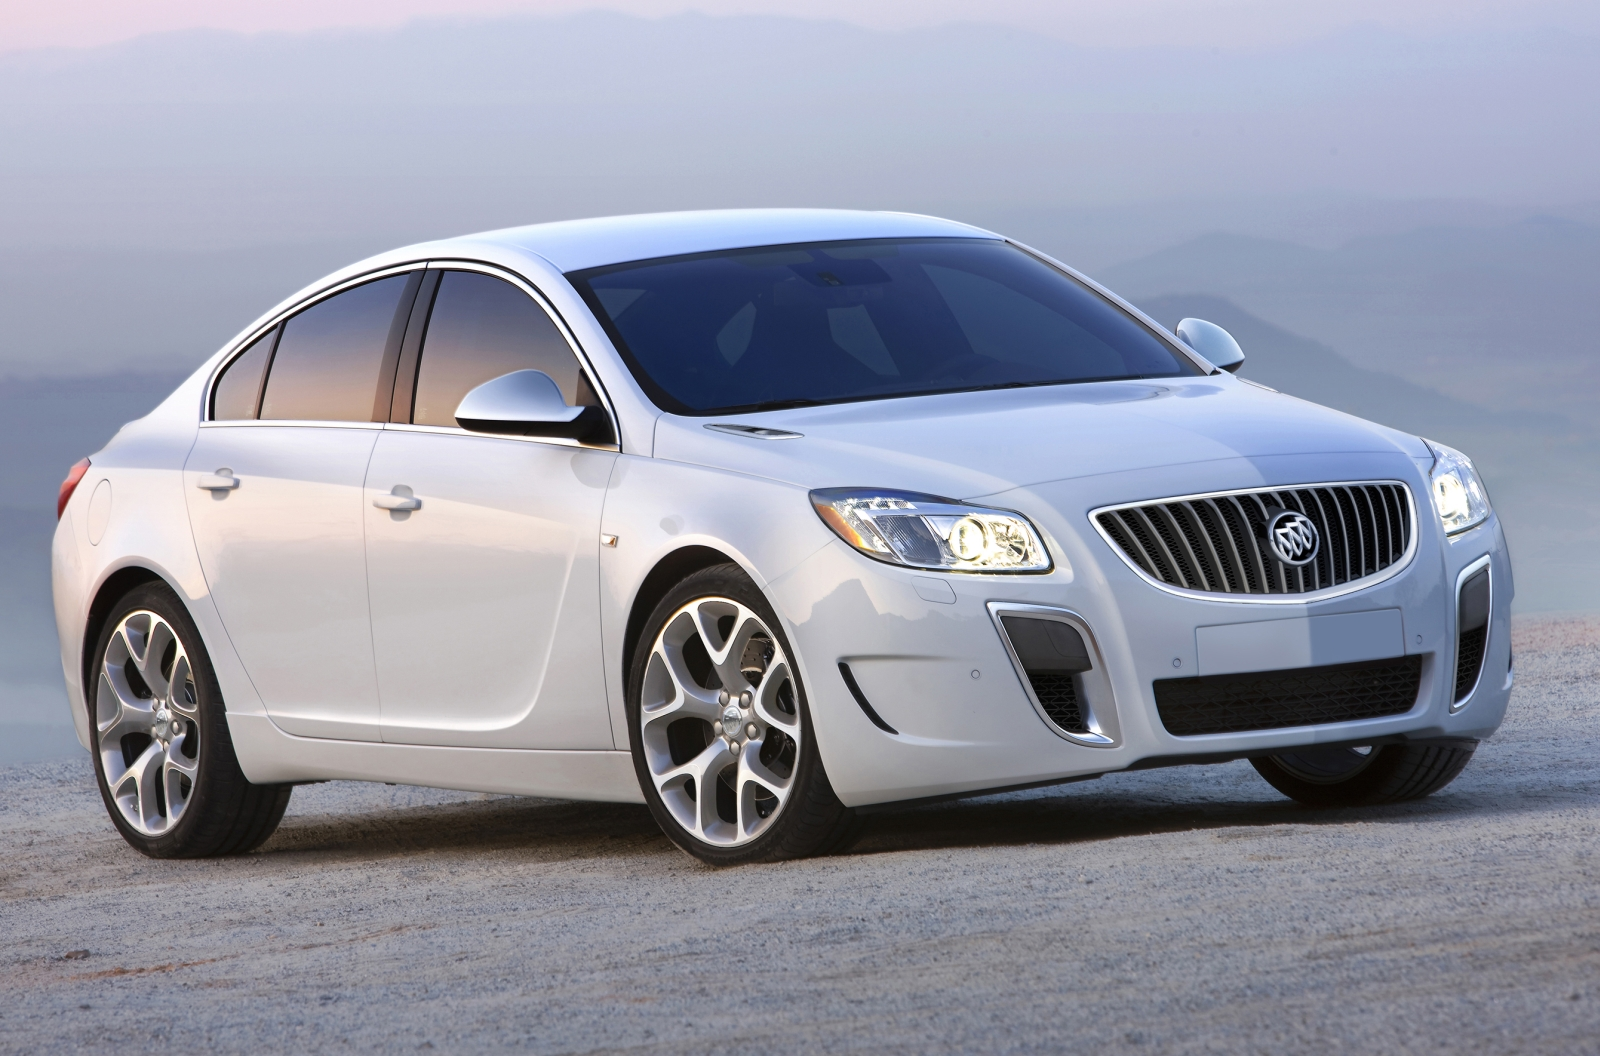 Buick Regal #7